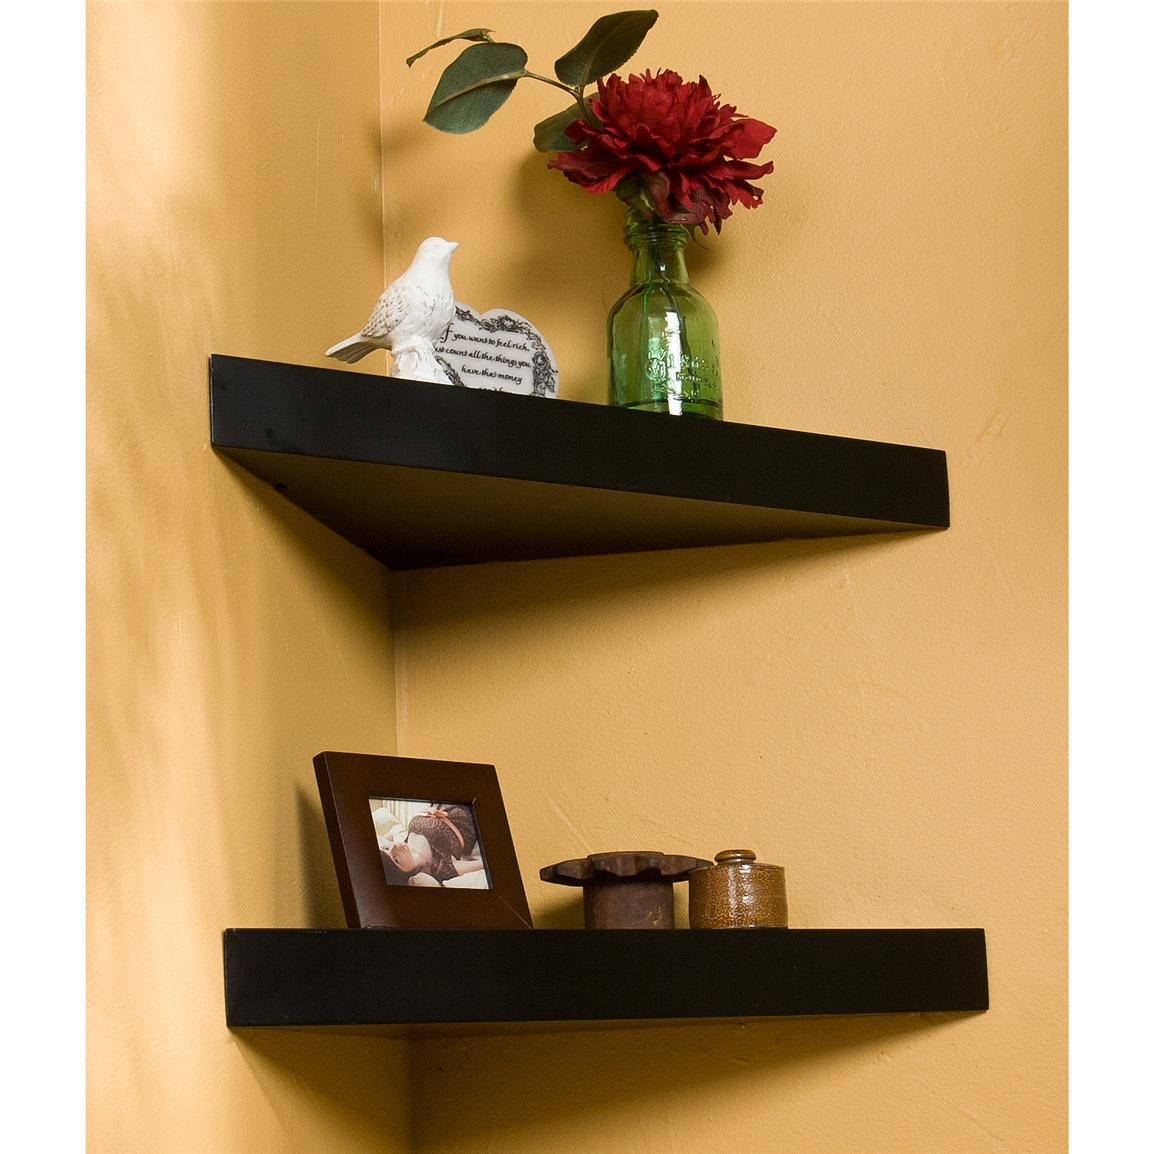 sei chicago corner floating shelf decorative black ture hanging without drilling crown molding wall glass stand for dvd player mounted unit inch book ledge holders hidden drawer